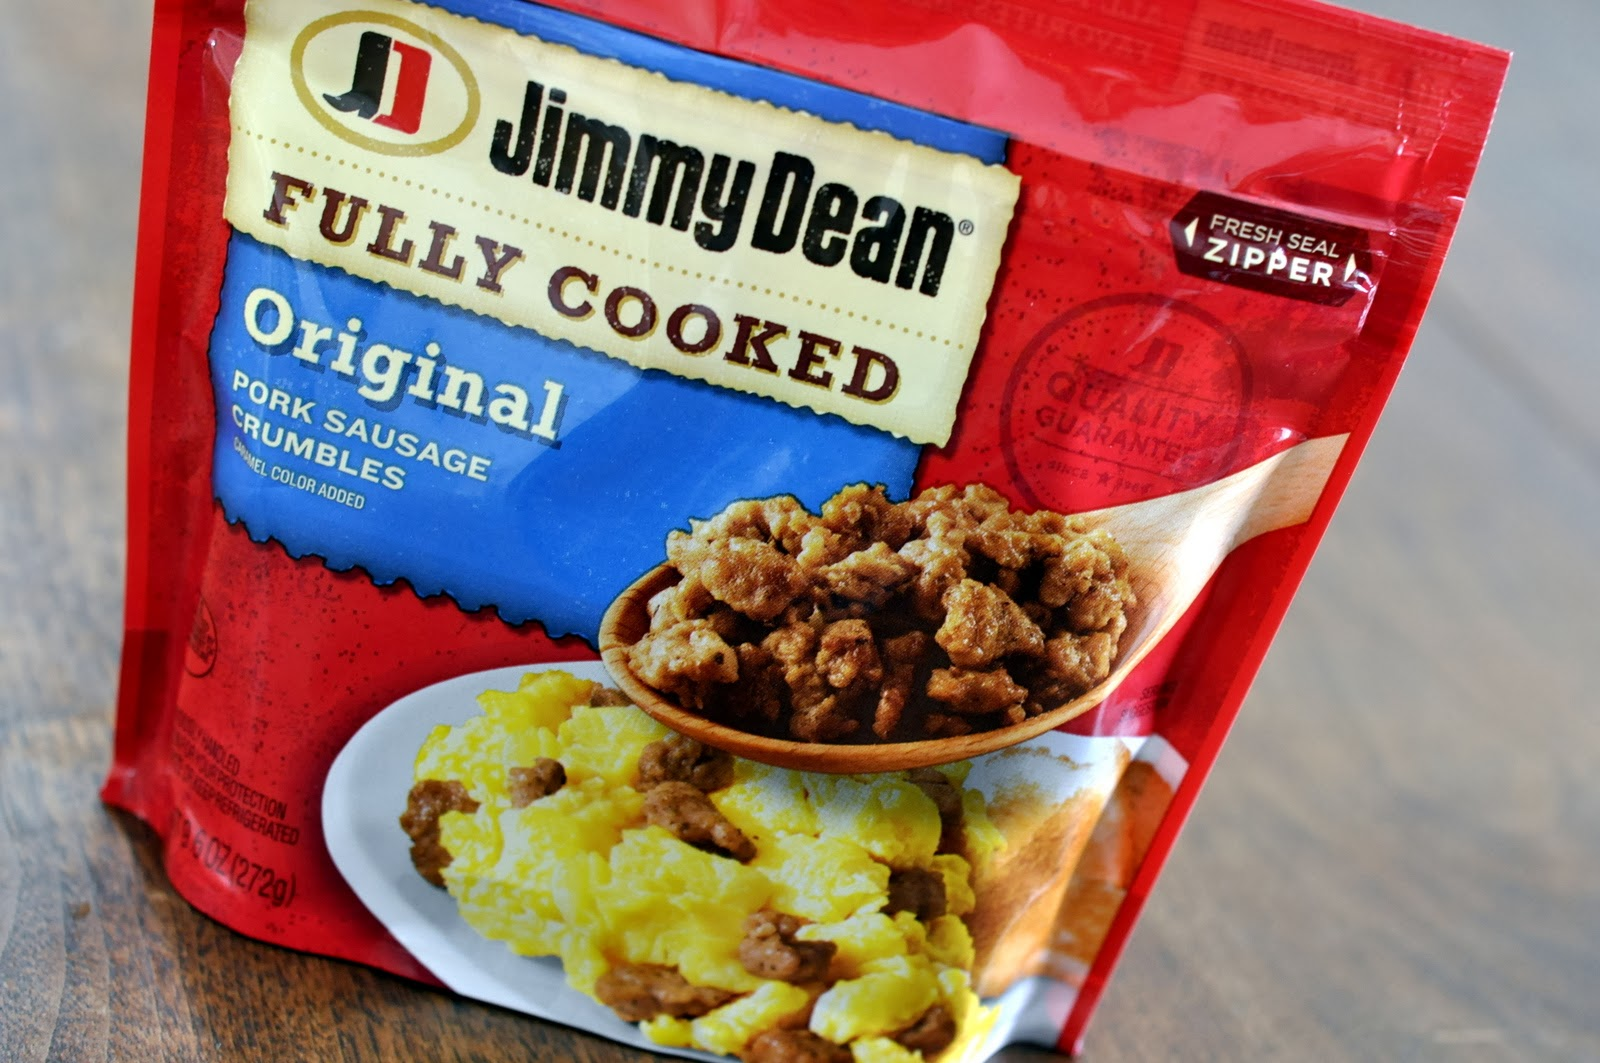 Jimmy Dean Fully Cooked Original Pork Sausage Crumbles | Taste As You Go #JDCrumbles